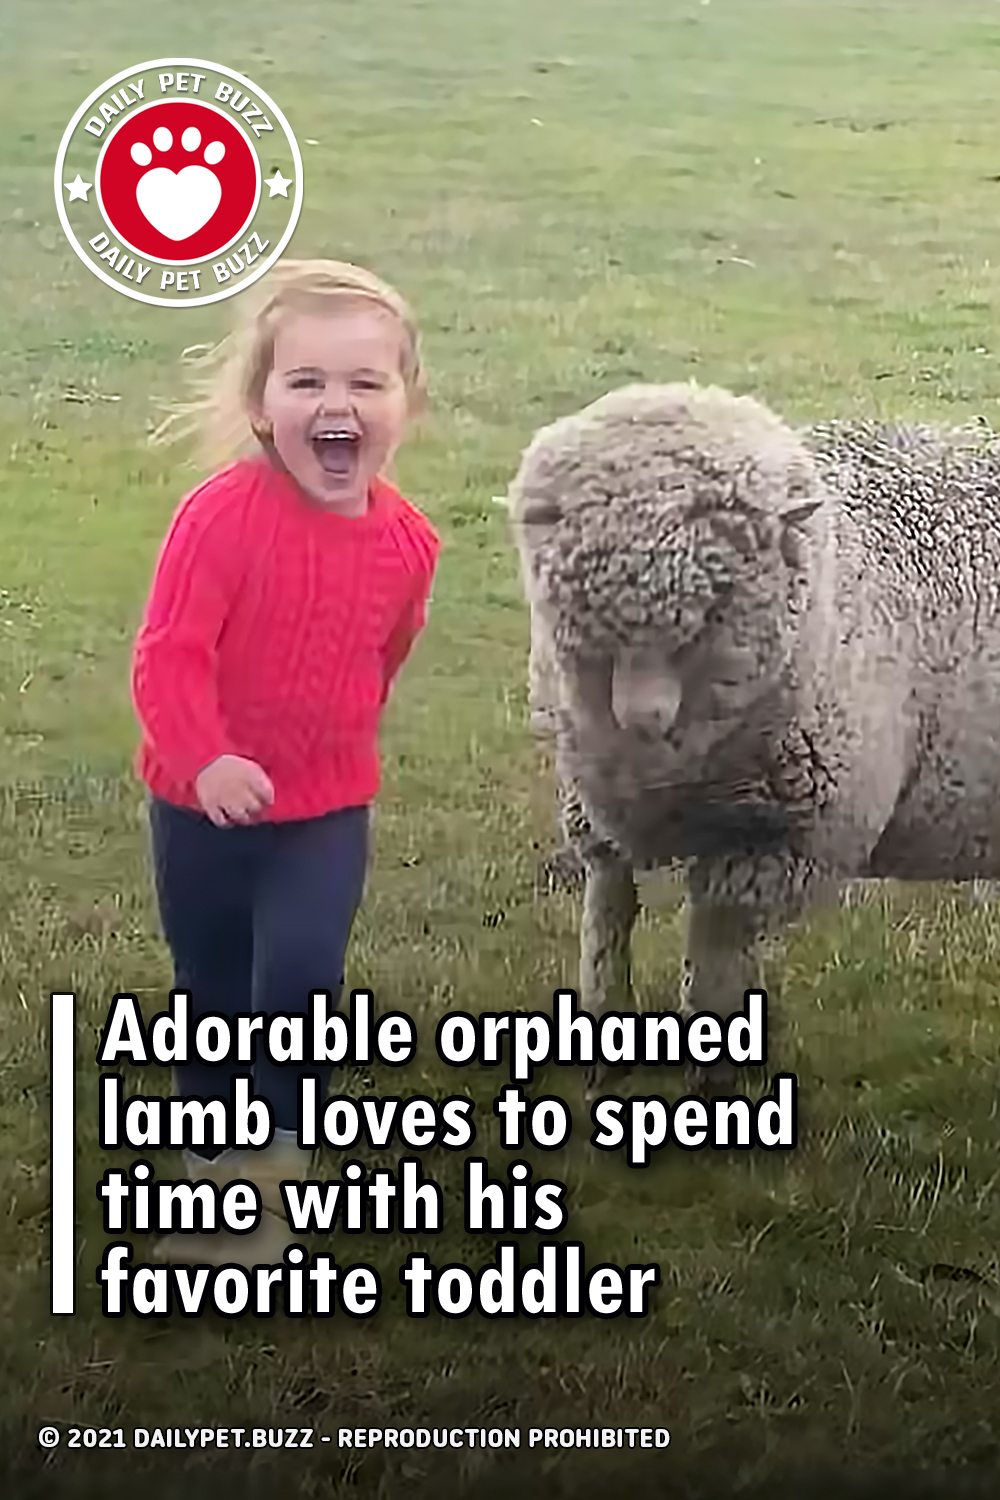 Adorable orphaned lamb loves to spend time with his favorite toddler